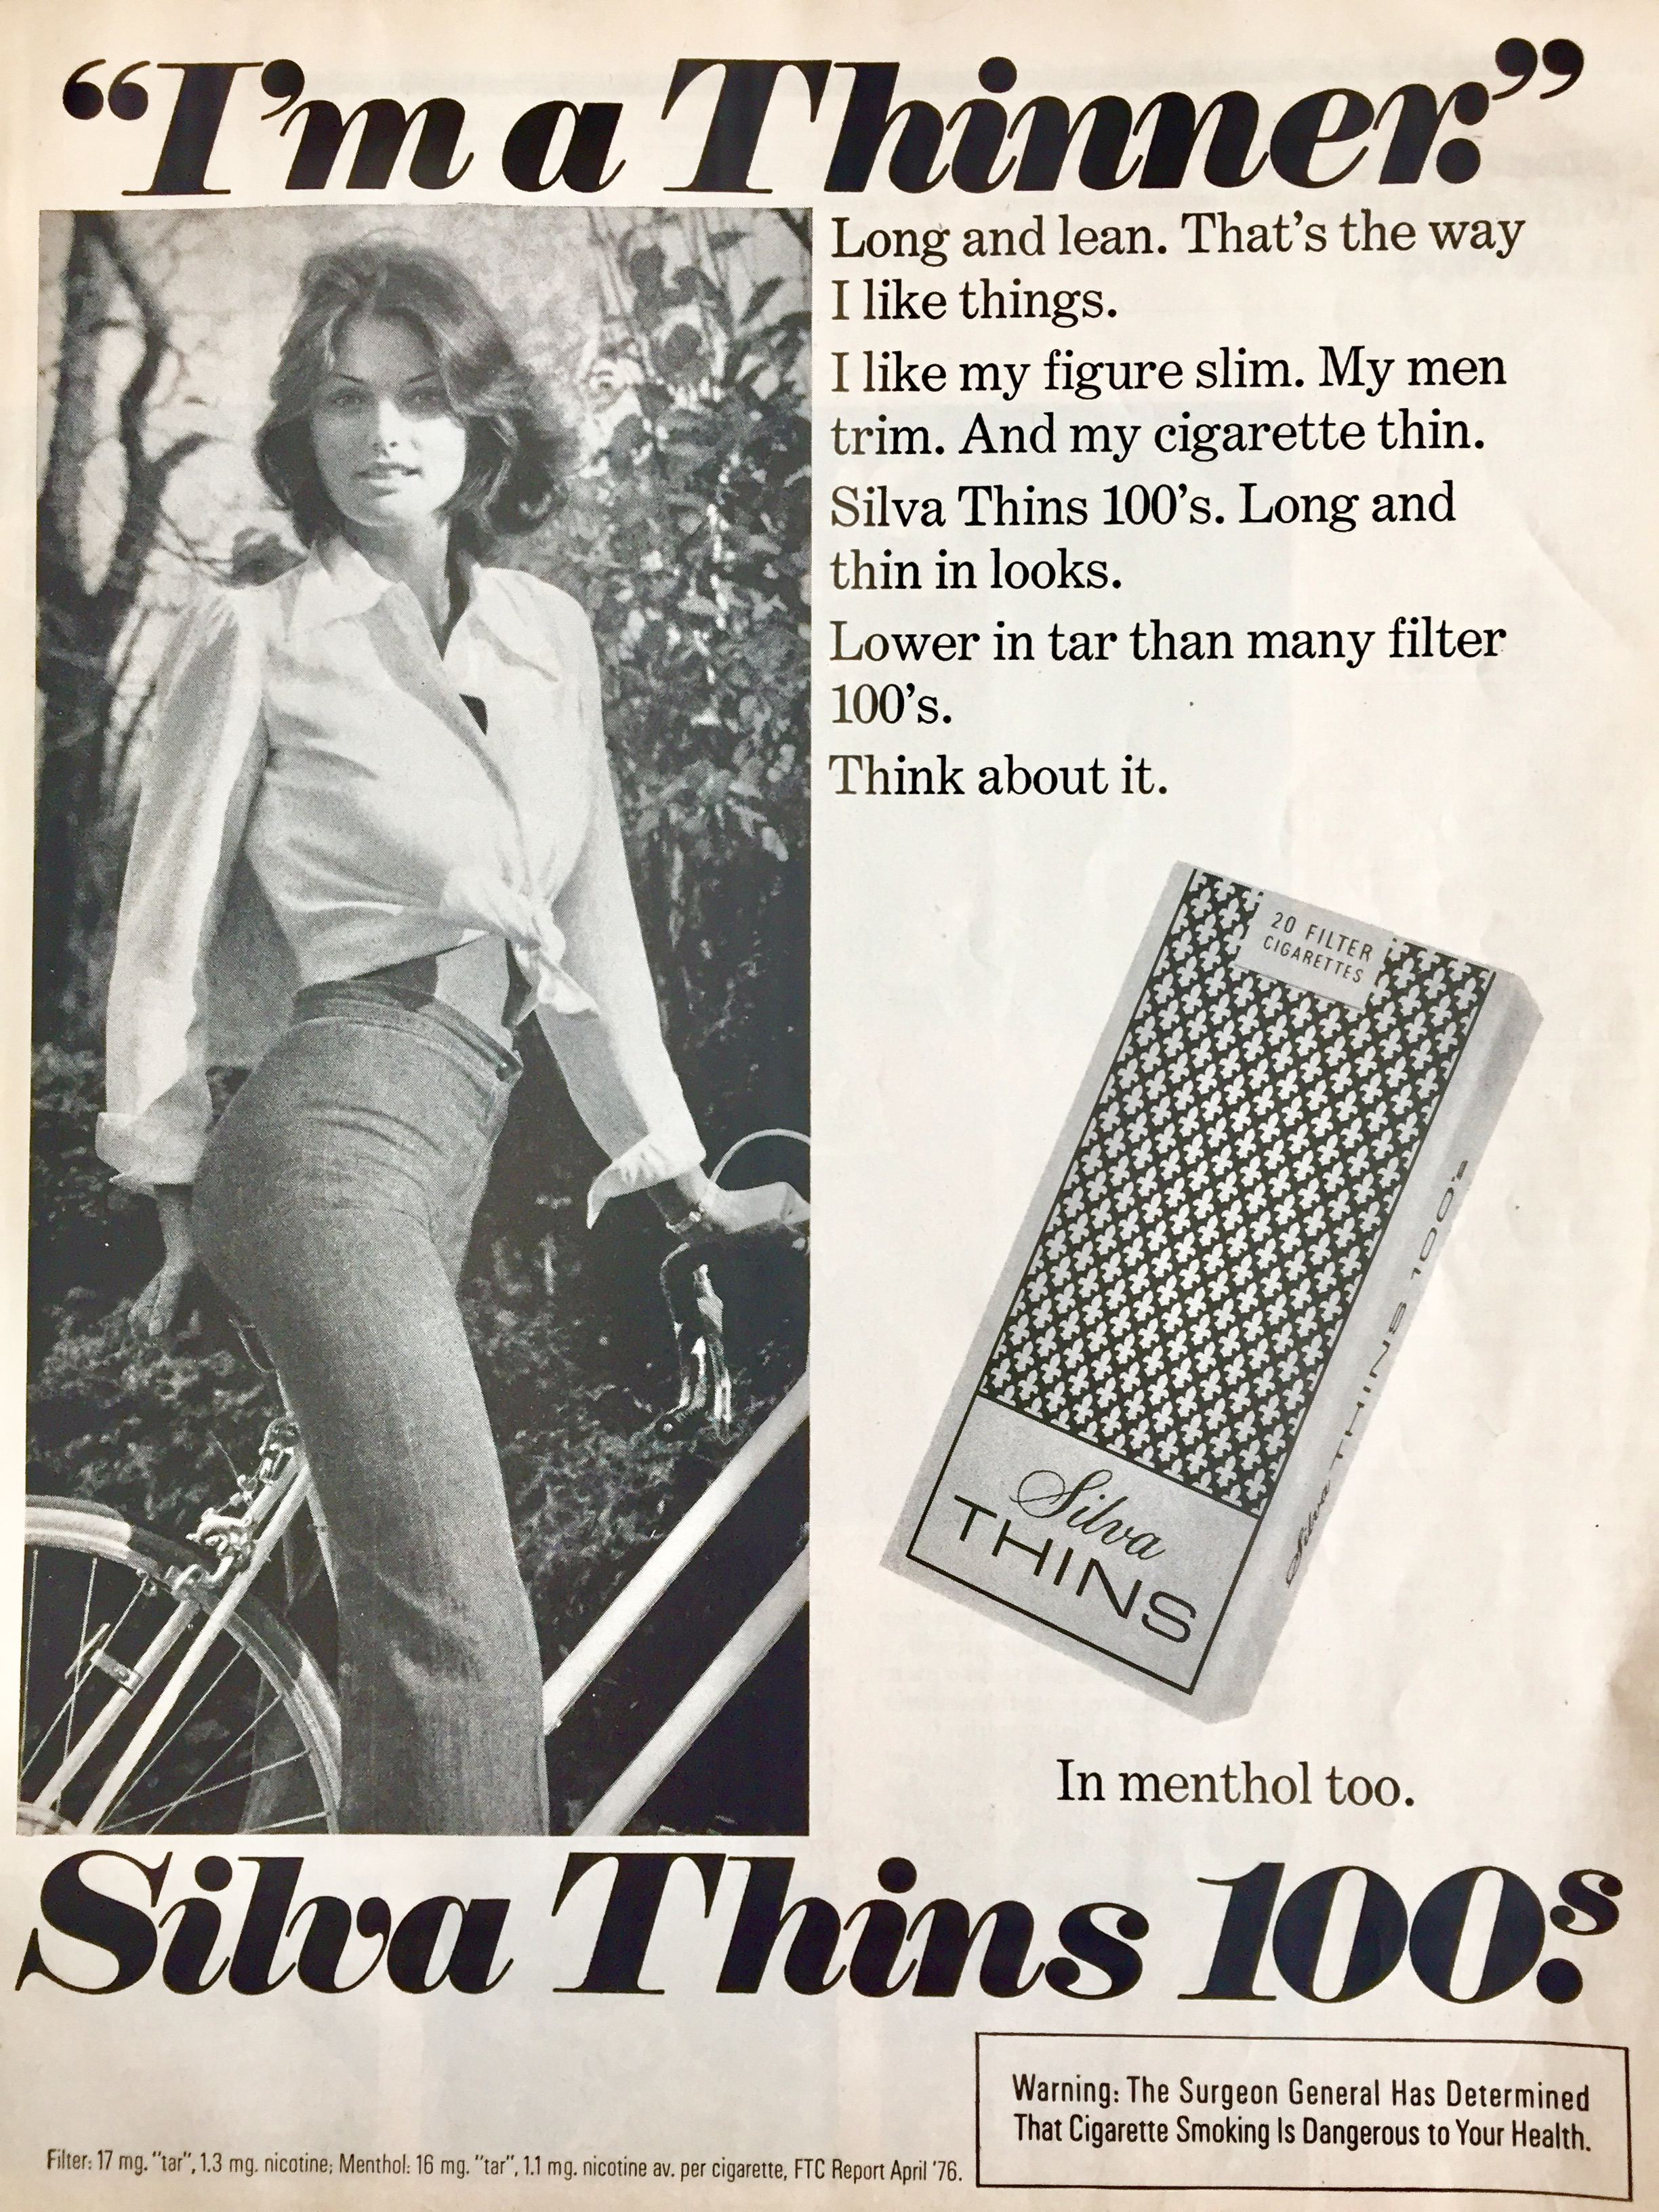 Back in the 70's you didn't have to worry about political correctness or apparently eating disorders. This cigarette ad sends a not so subtle message about what smoking can do for your figure.